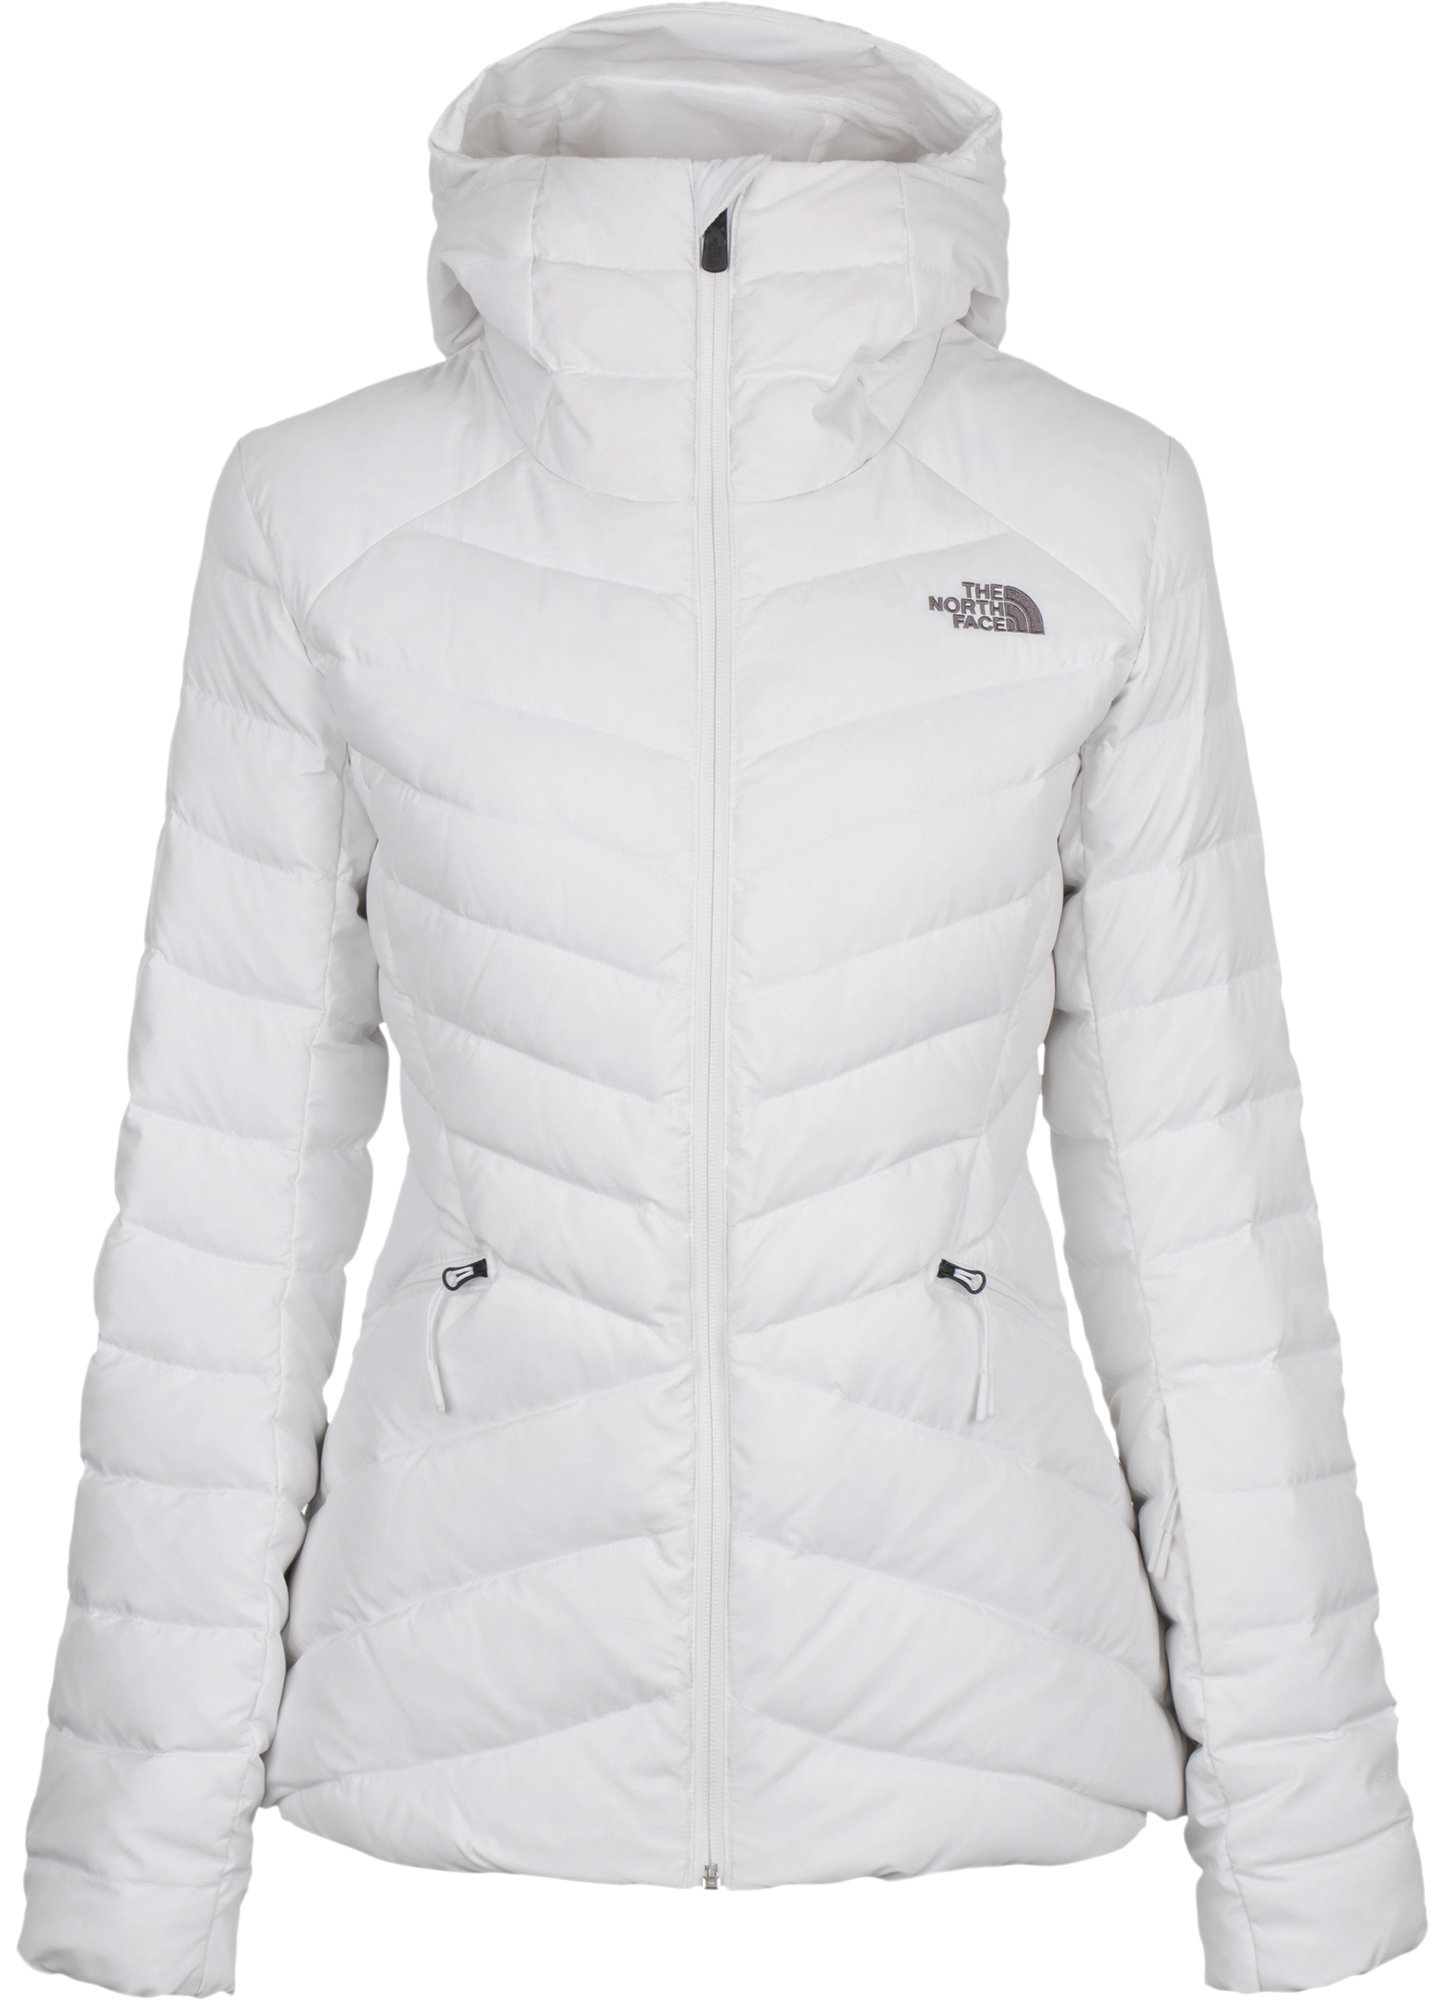 The North Face Куртка пуховая женская The North Face Moonlight north star by bata no022awqed50